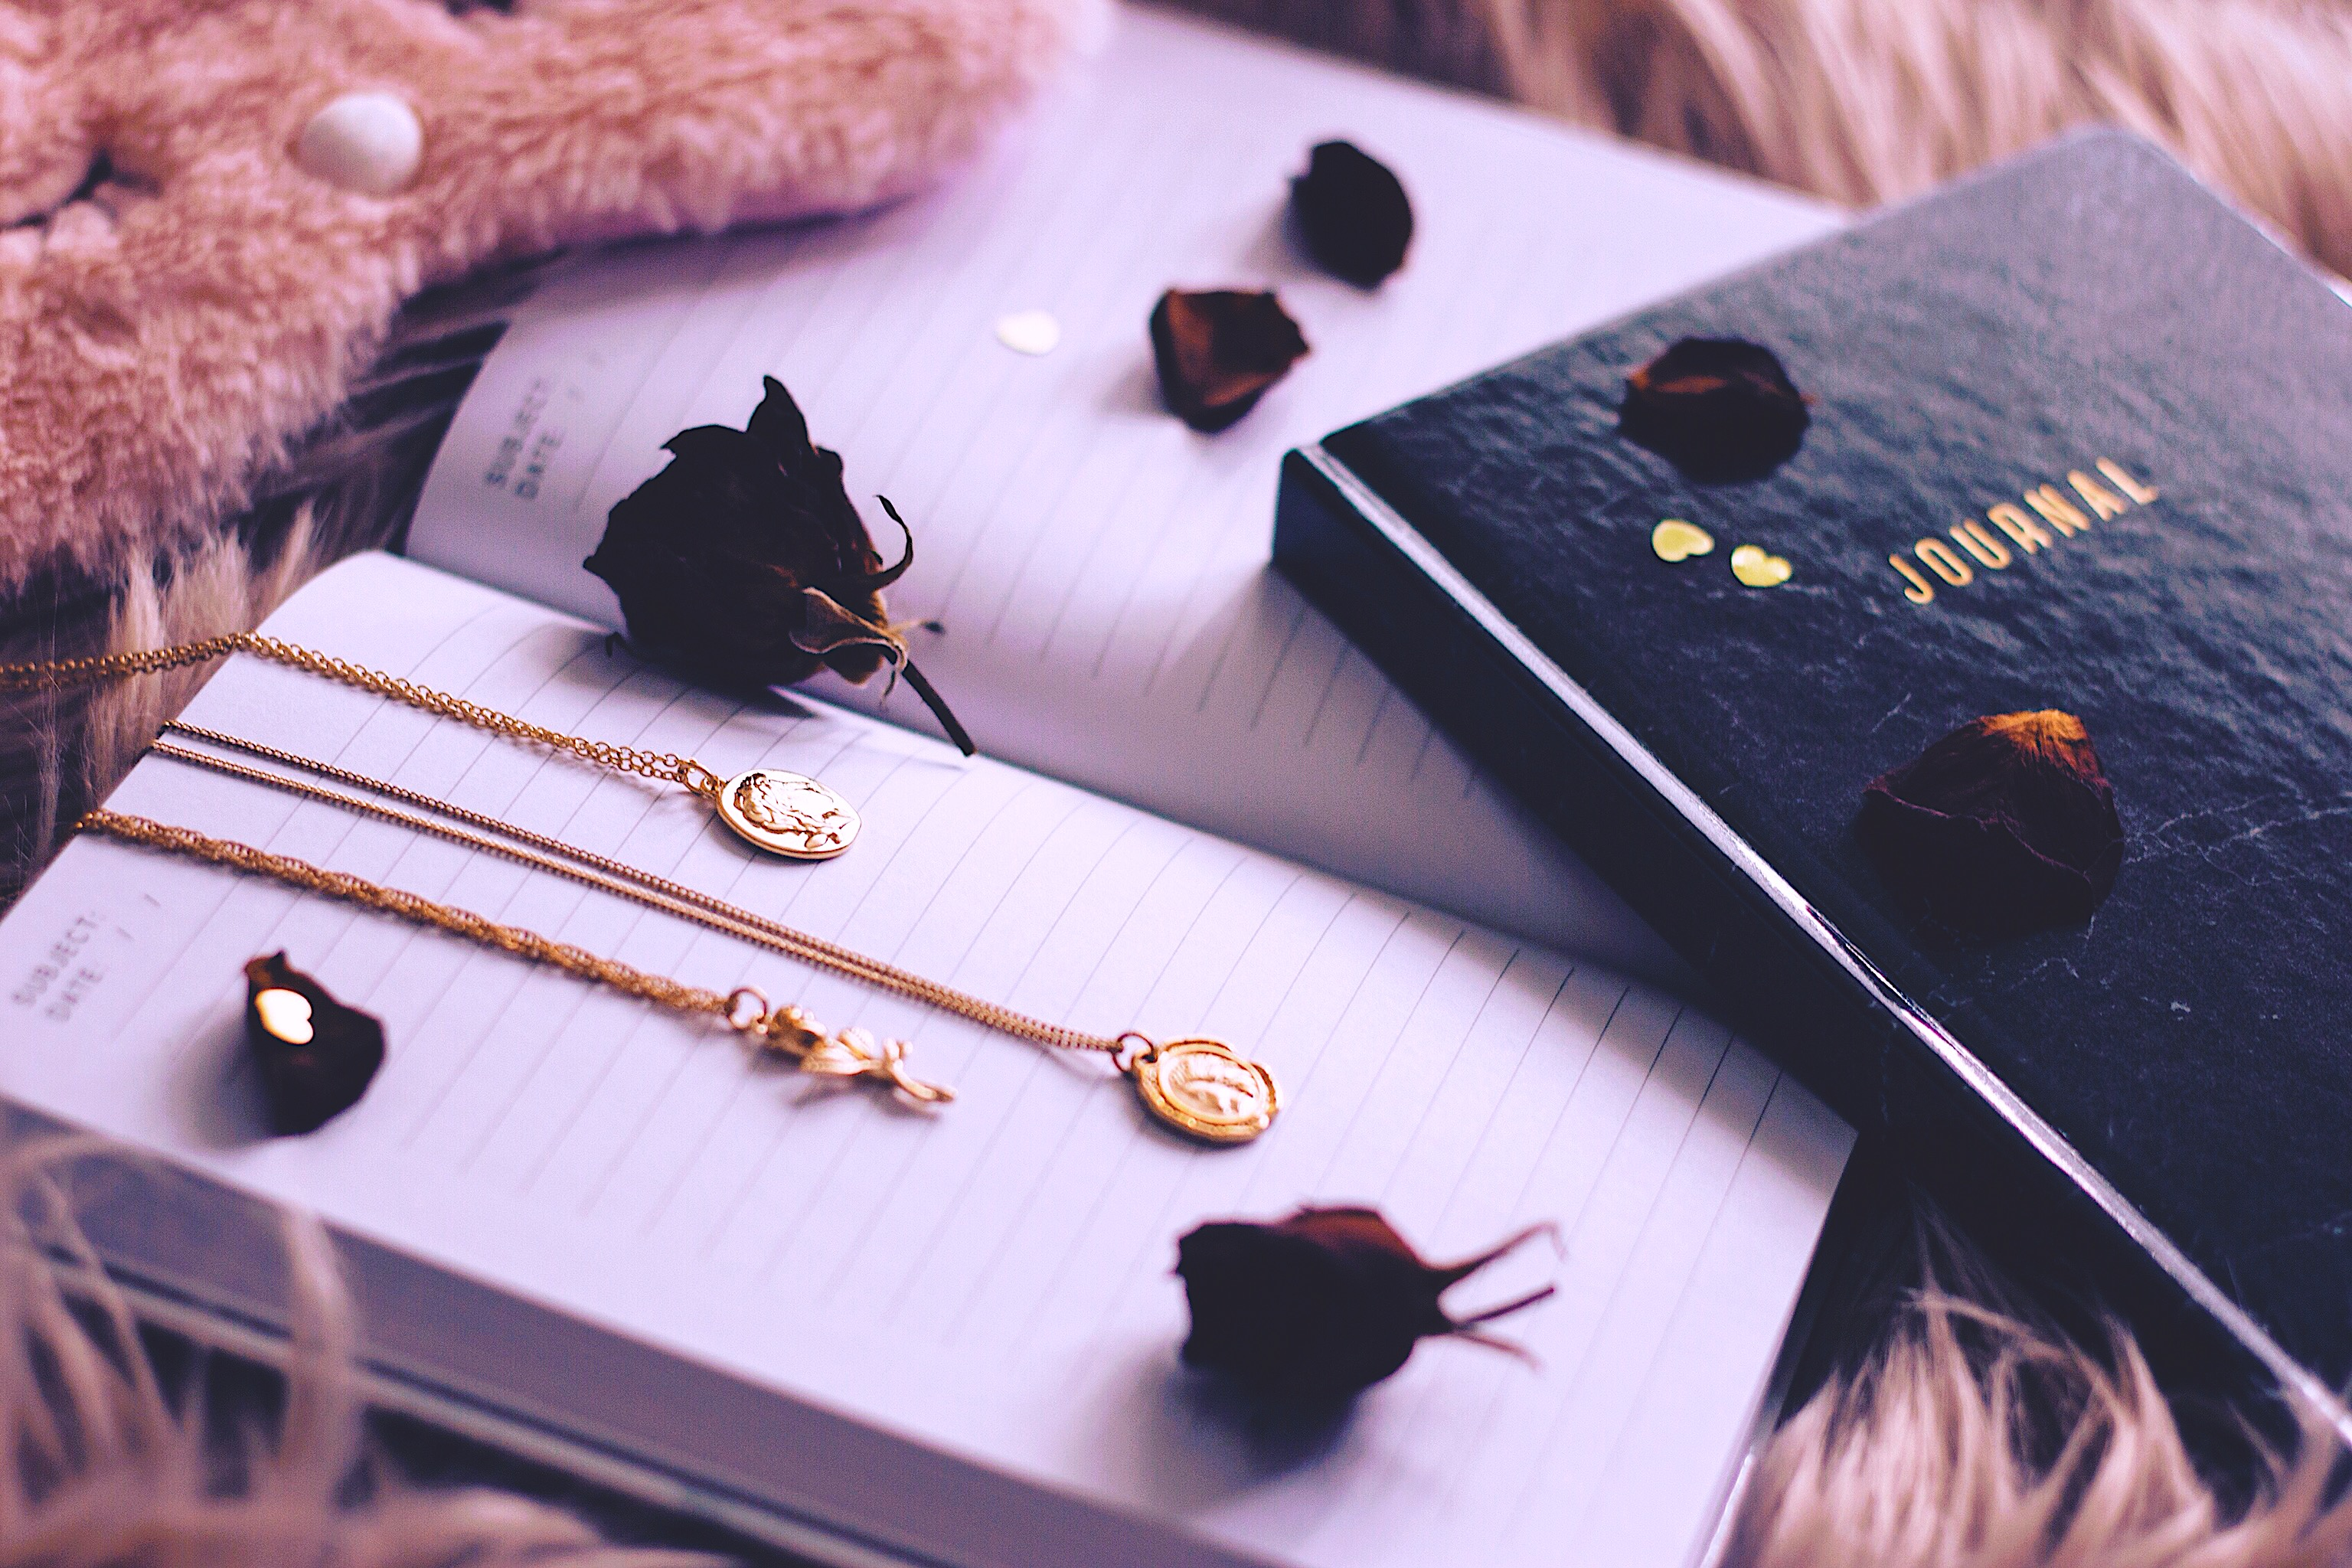 Nighttime routine journal Style Unsettled